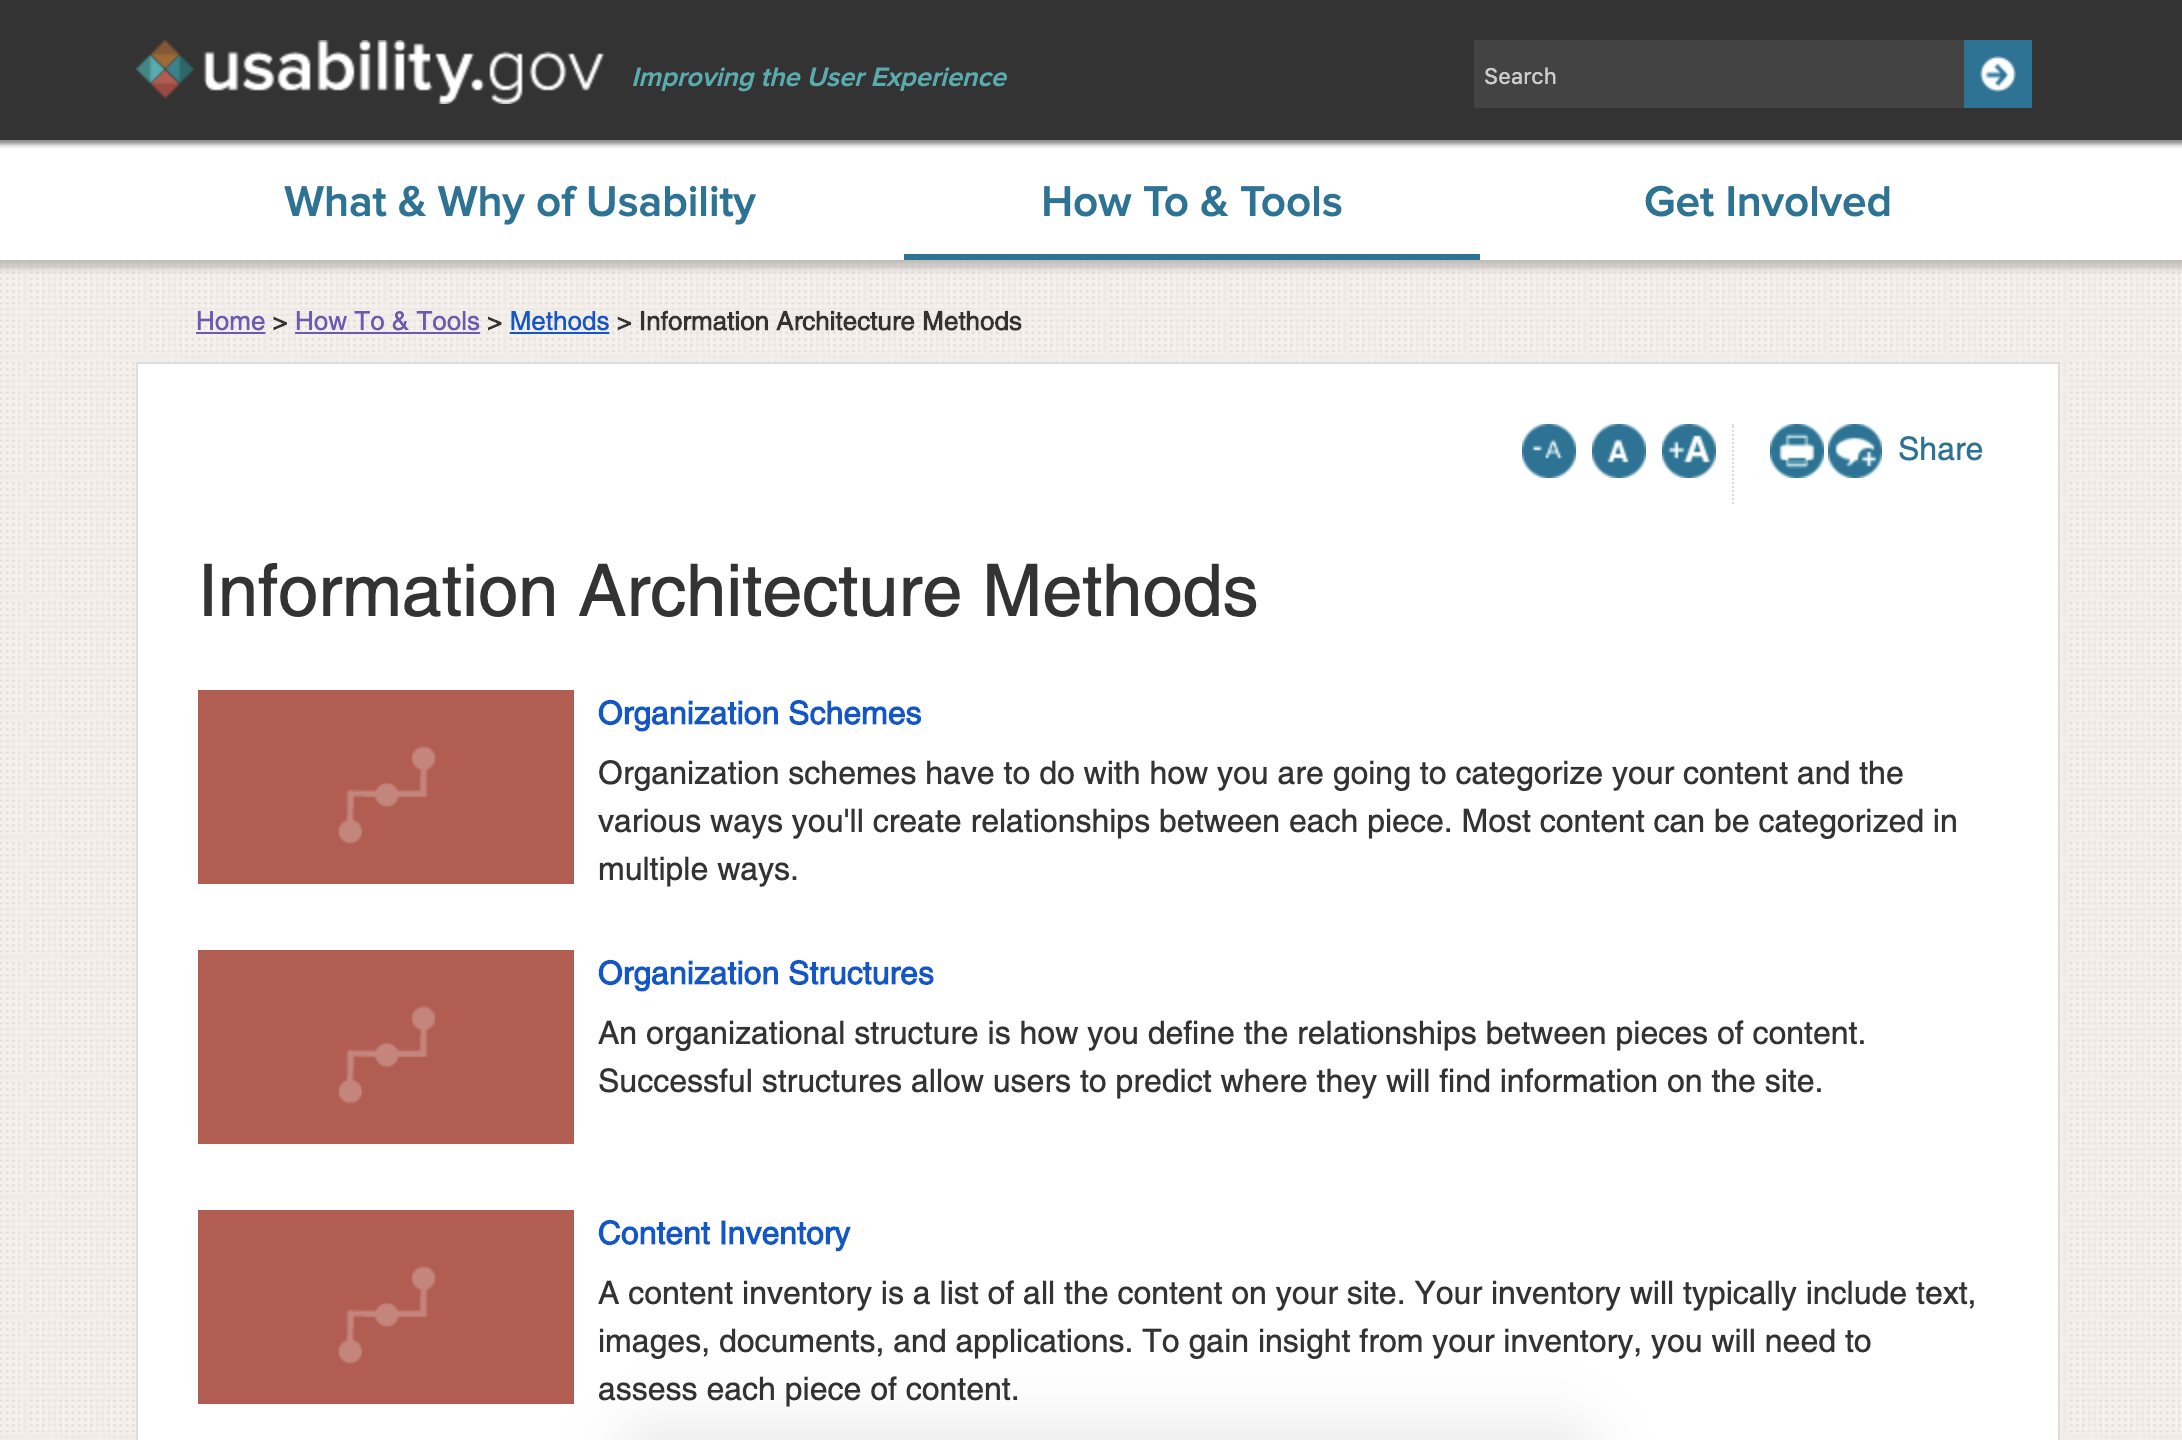 The usability.gov website showing a list of their resources on information architecture methods.